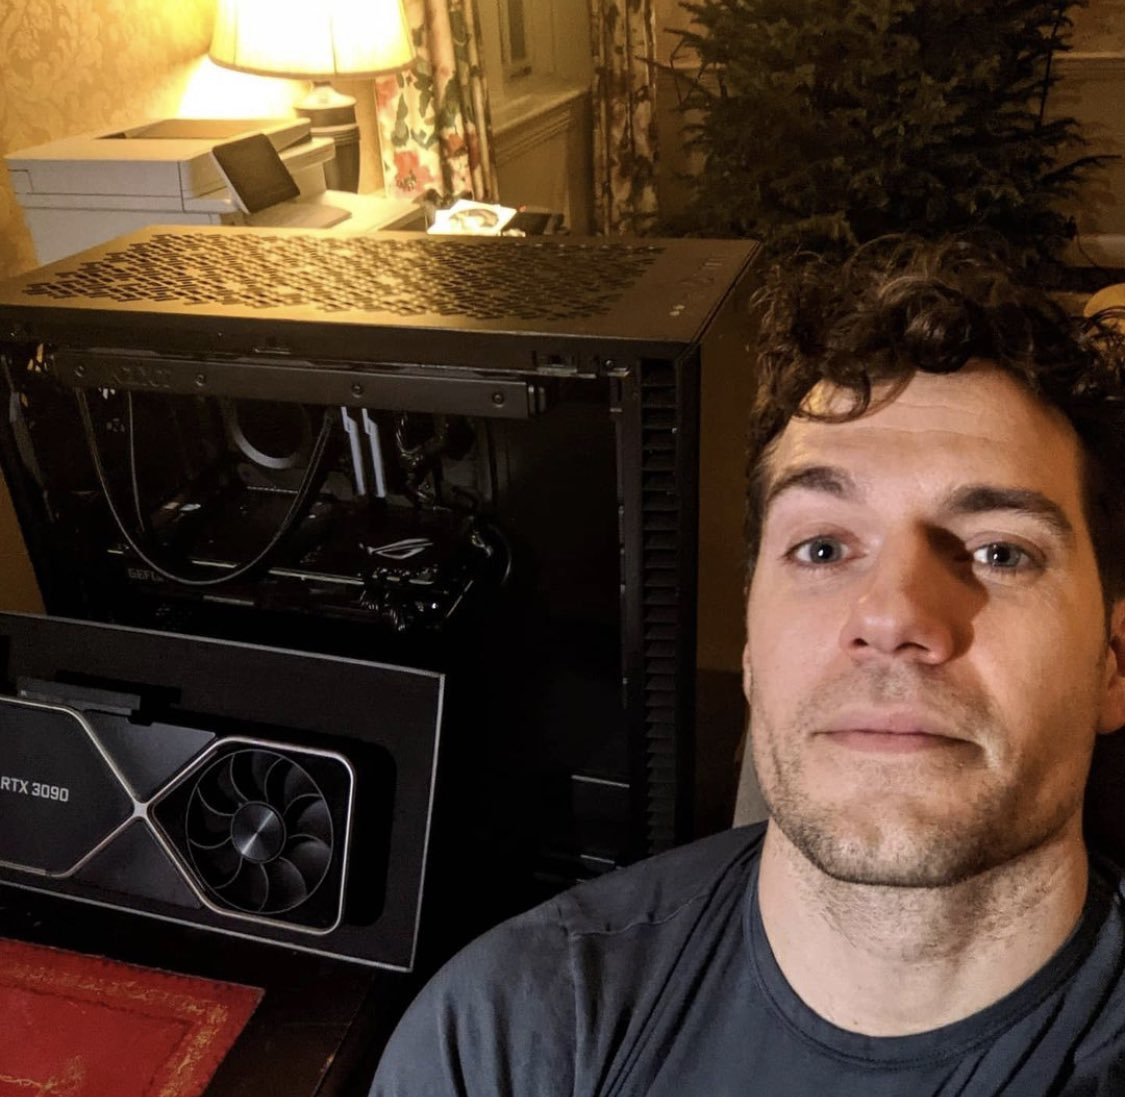 """DiscussingFilm on Twitter: """"Henry Cavill shares a new look at his PC with a  RTX 3090 graphics card. (Source: henrycavill/IG) https://t.co/CTMg7K59ED"""" /  Twitter"""